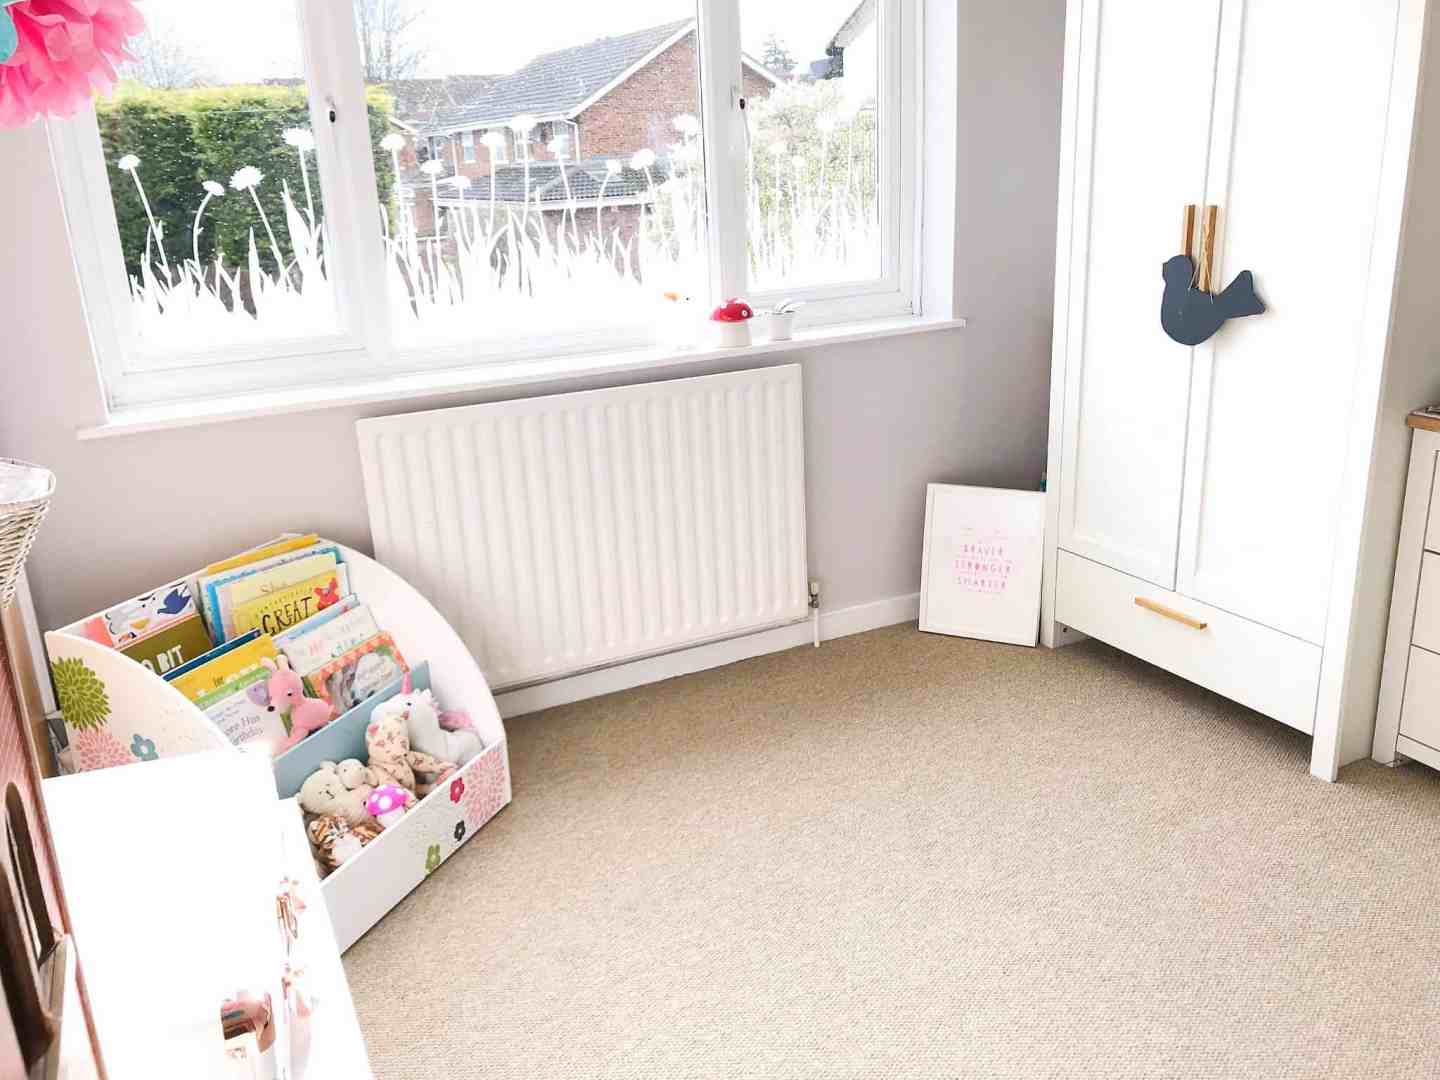 Planning a Playroom and Creative Space